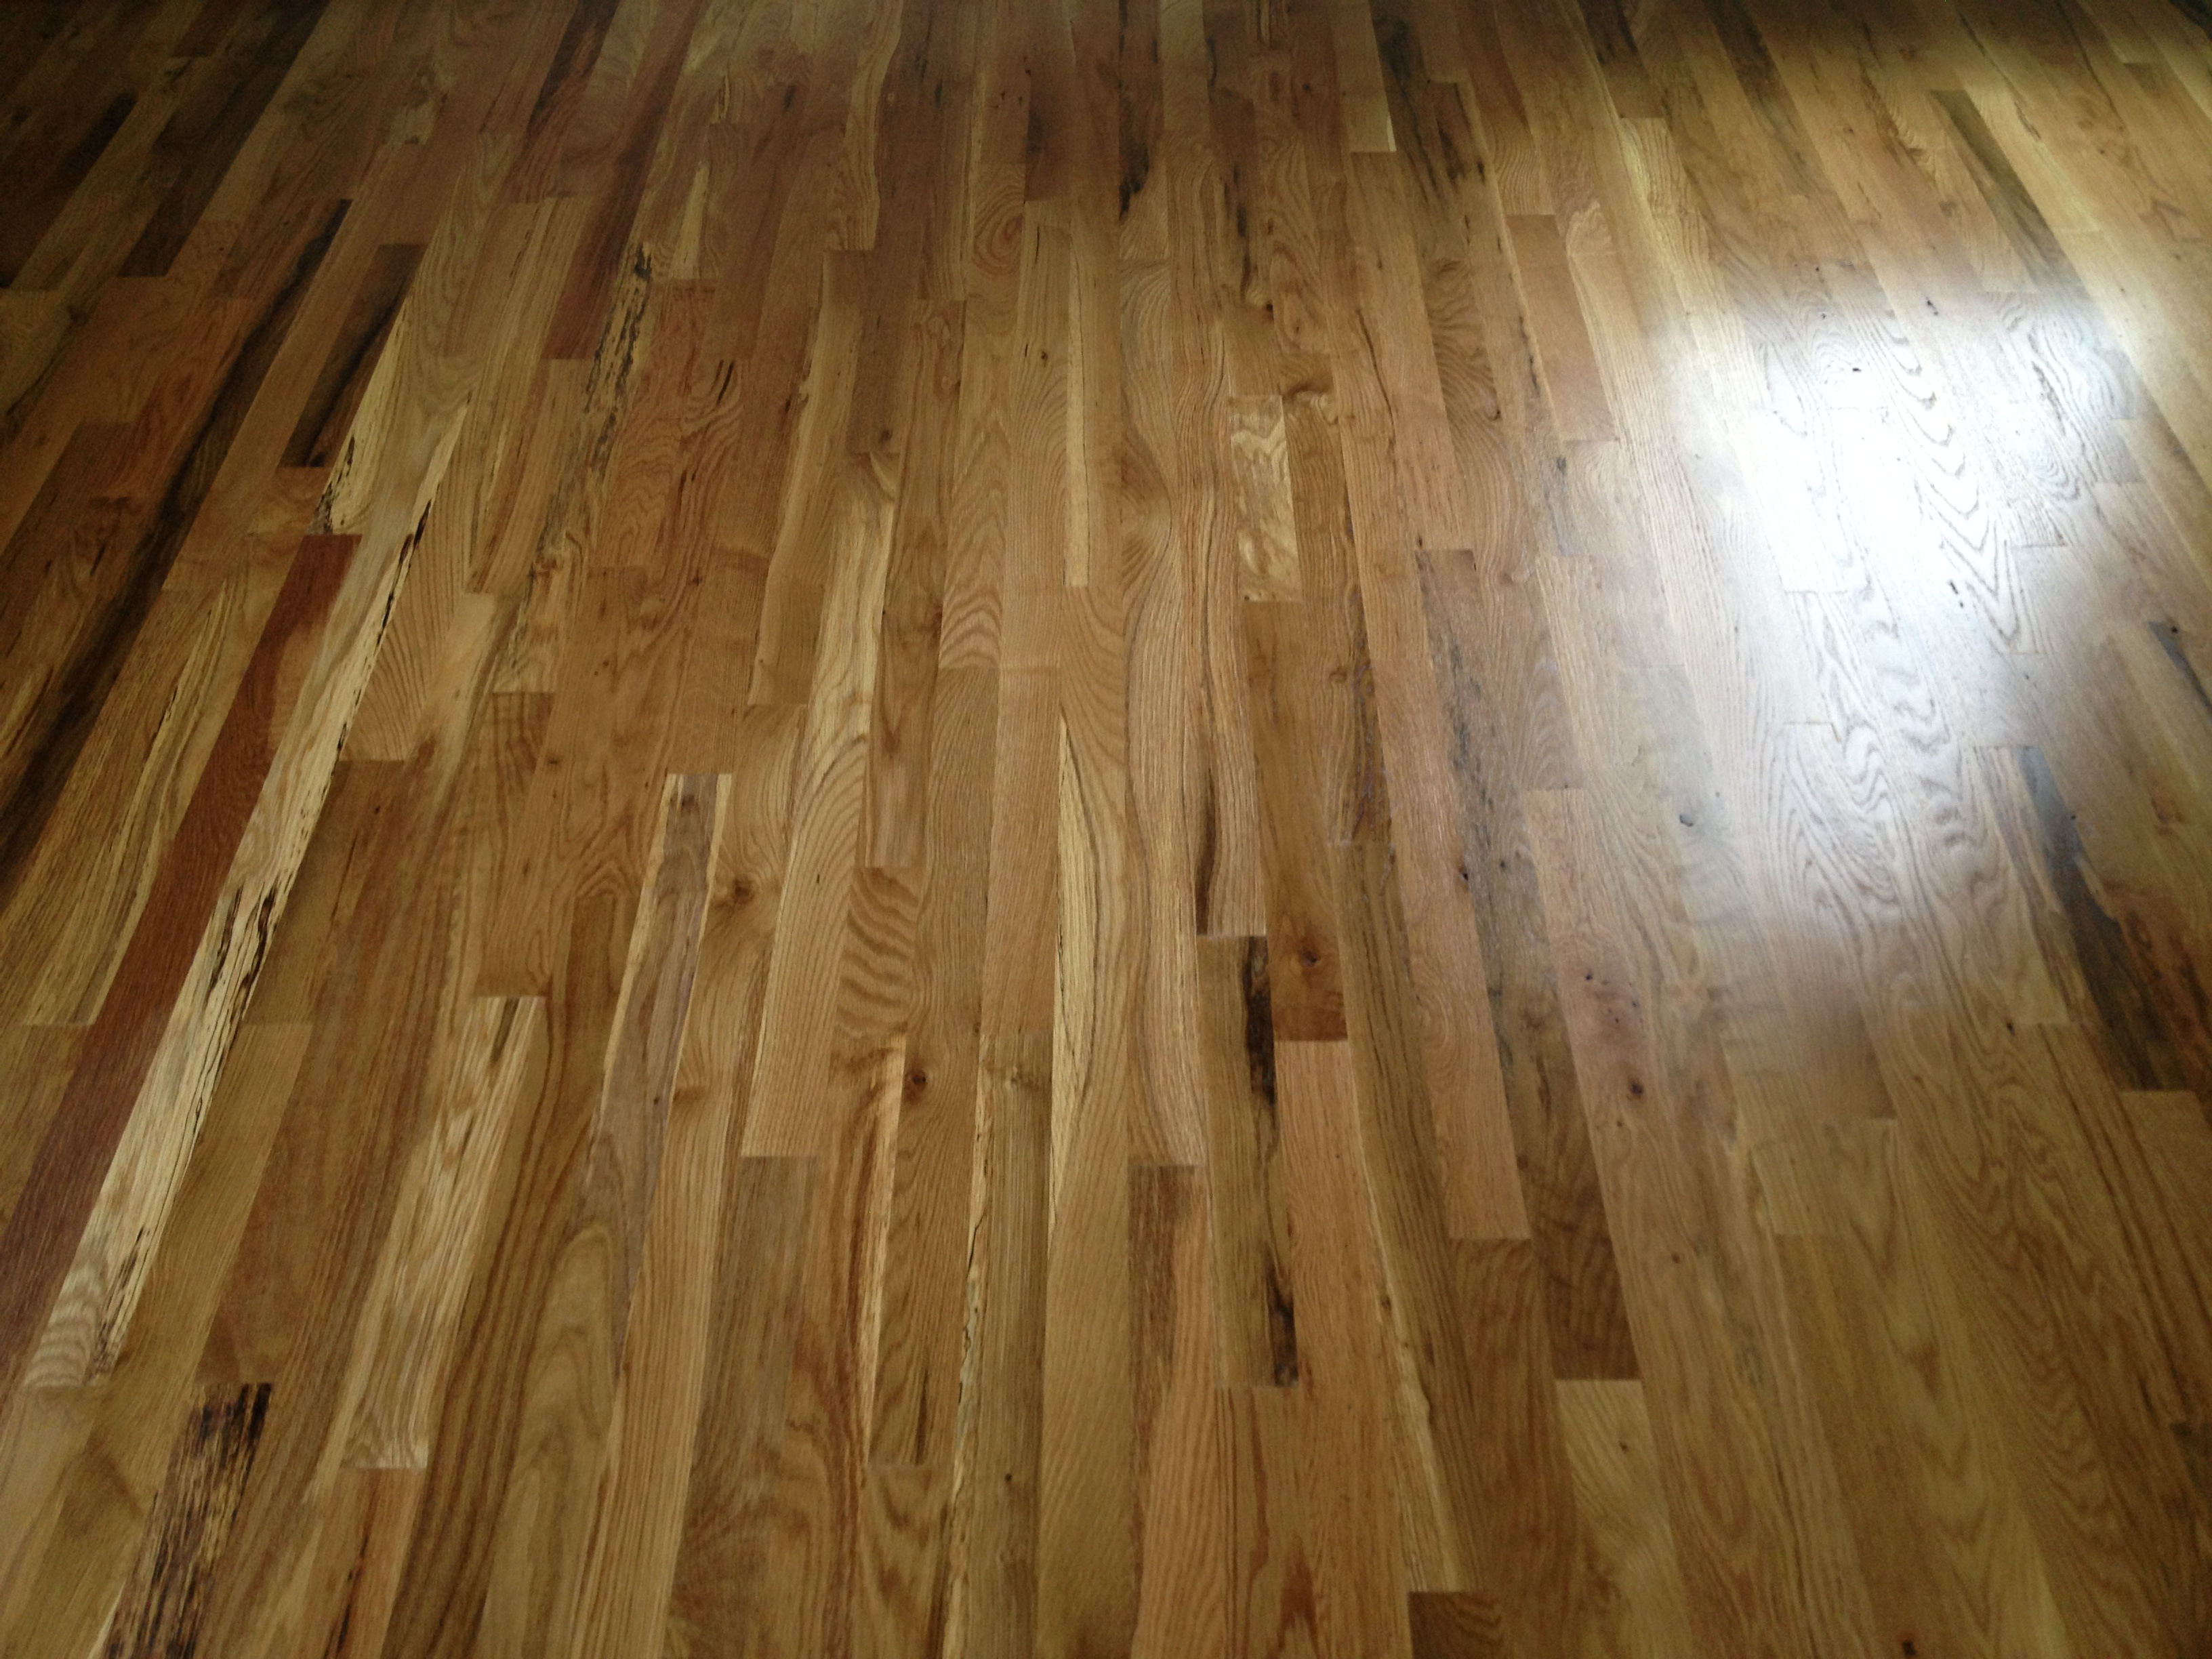 Red oak hardwood flooring grades meze blog for Red oak hardwood flooring